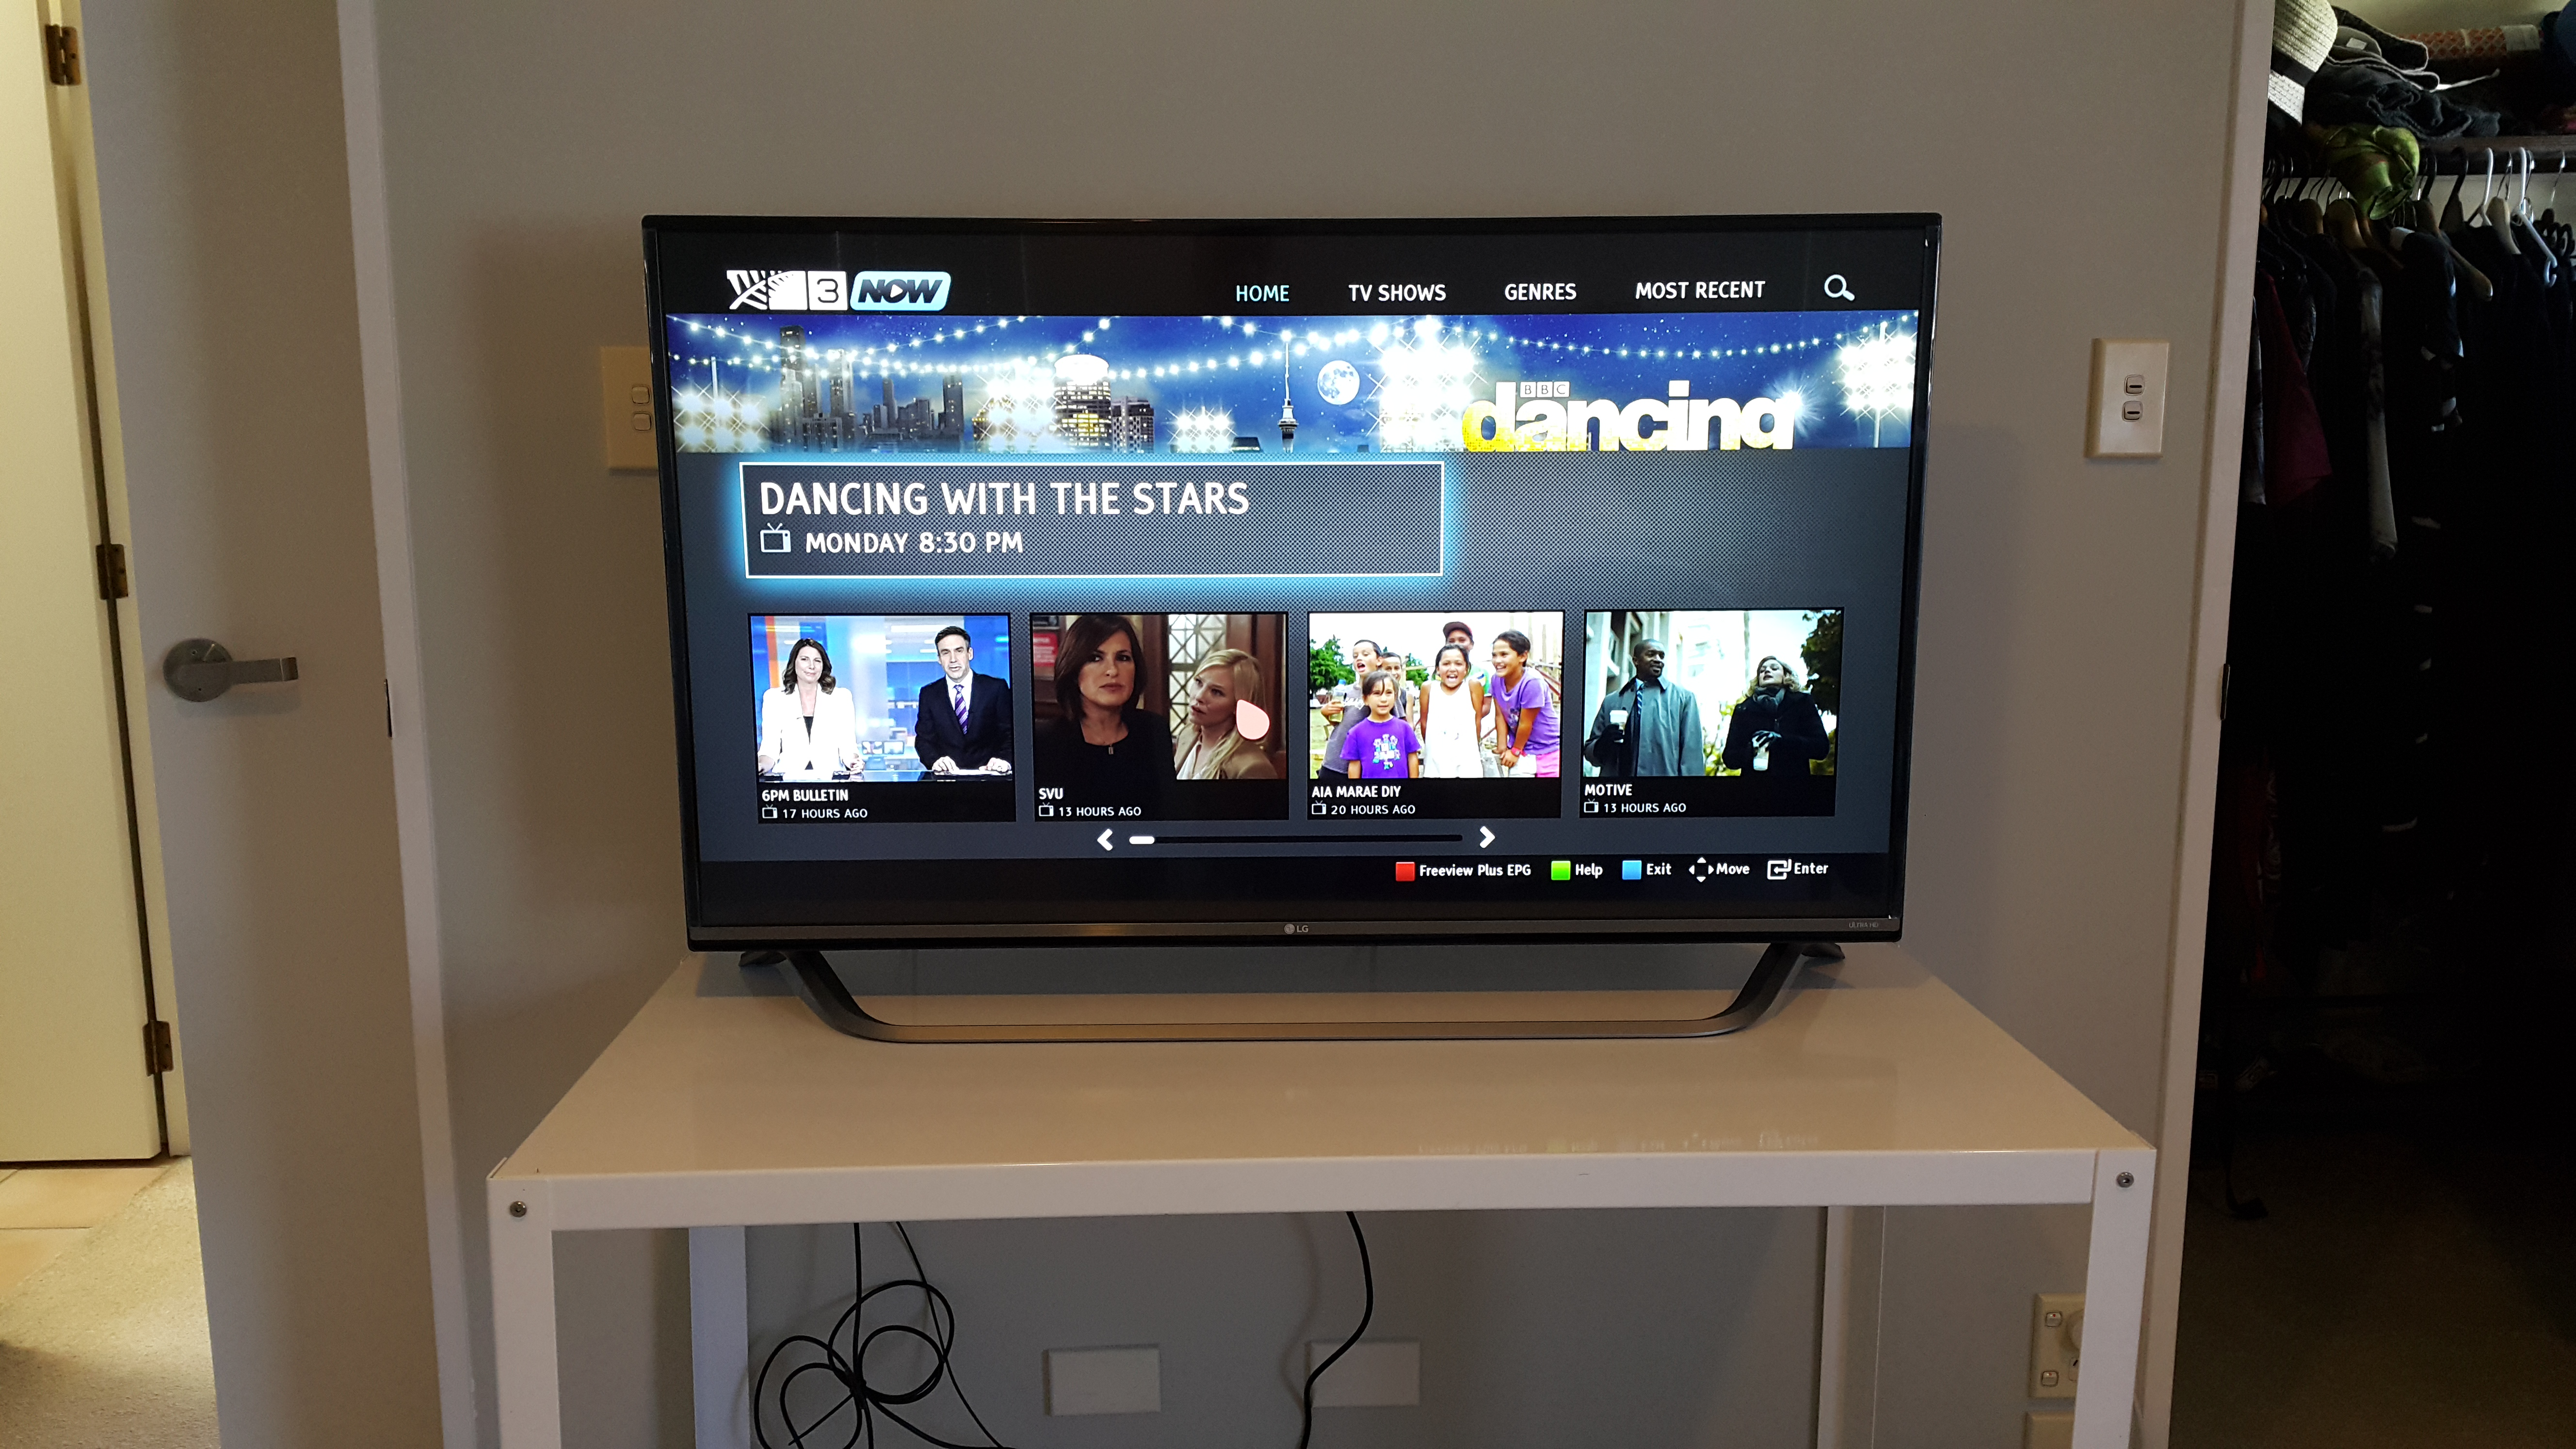 HBBTV – TheGadgetGuy co nz